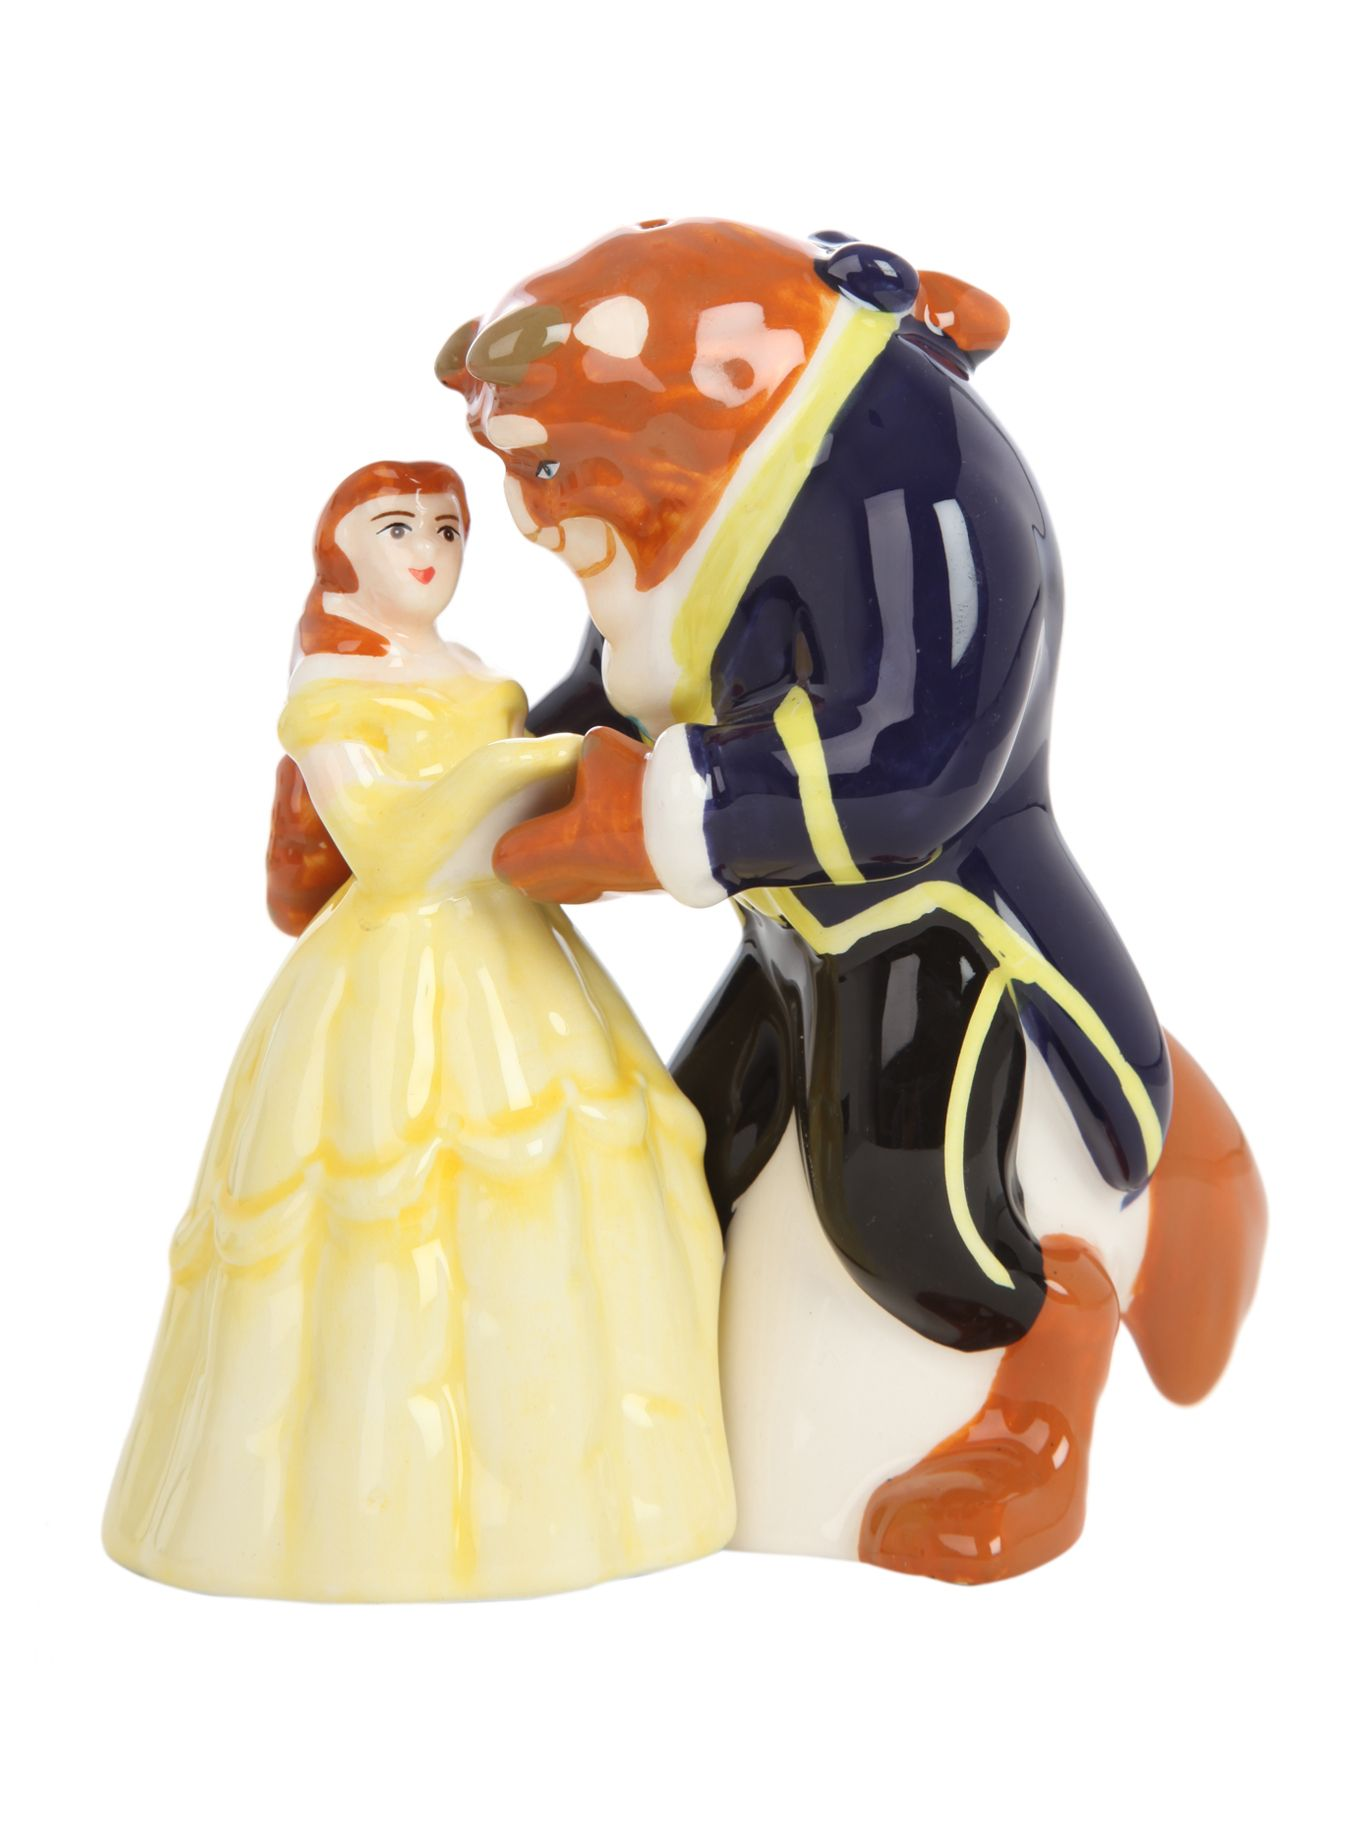 Disney Beauty And The Beast Salt & Pepper Shakers | Hot Topic someone please get these for me when I get married someday